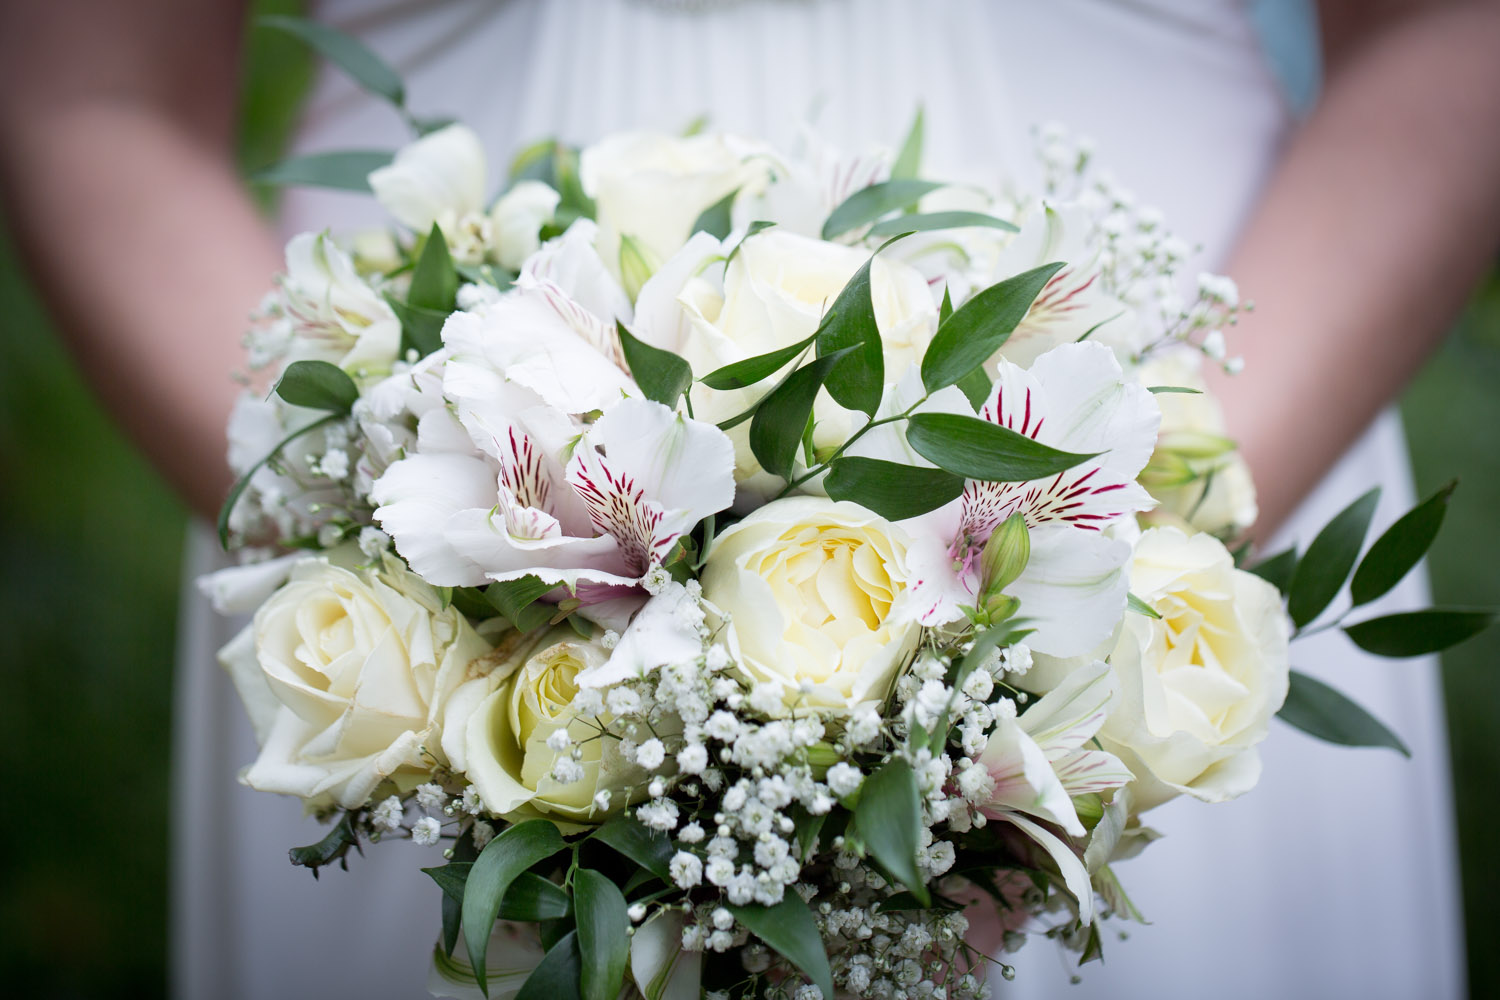 16-wedding-details-bridal-bouquet-white-roses-greenery-babys-breath-mahonen-photography.jpg